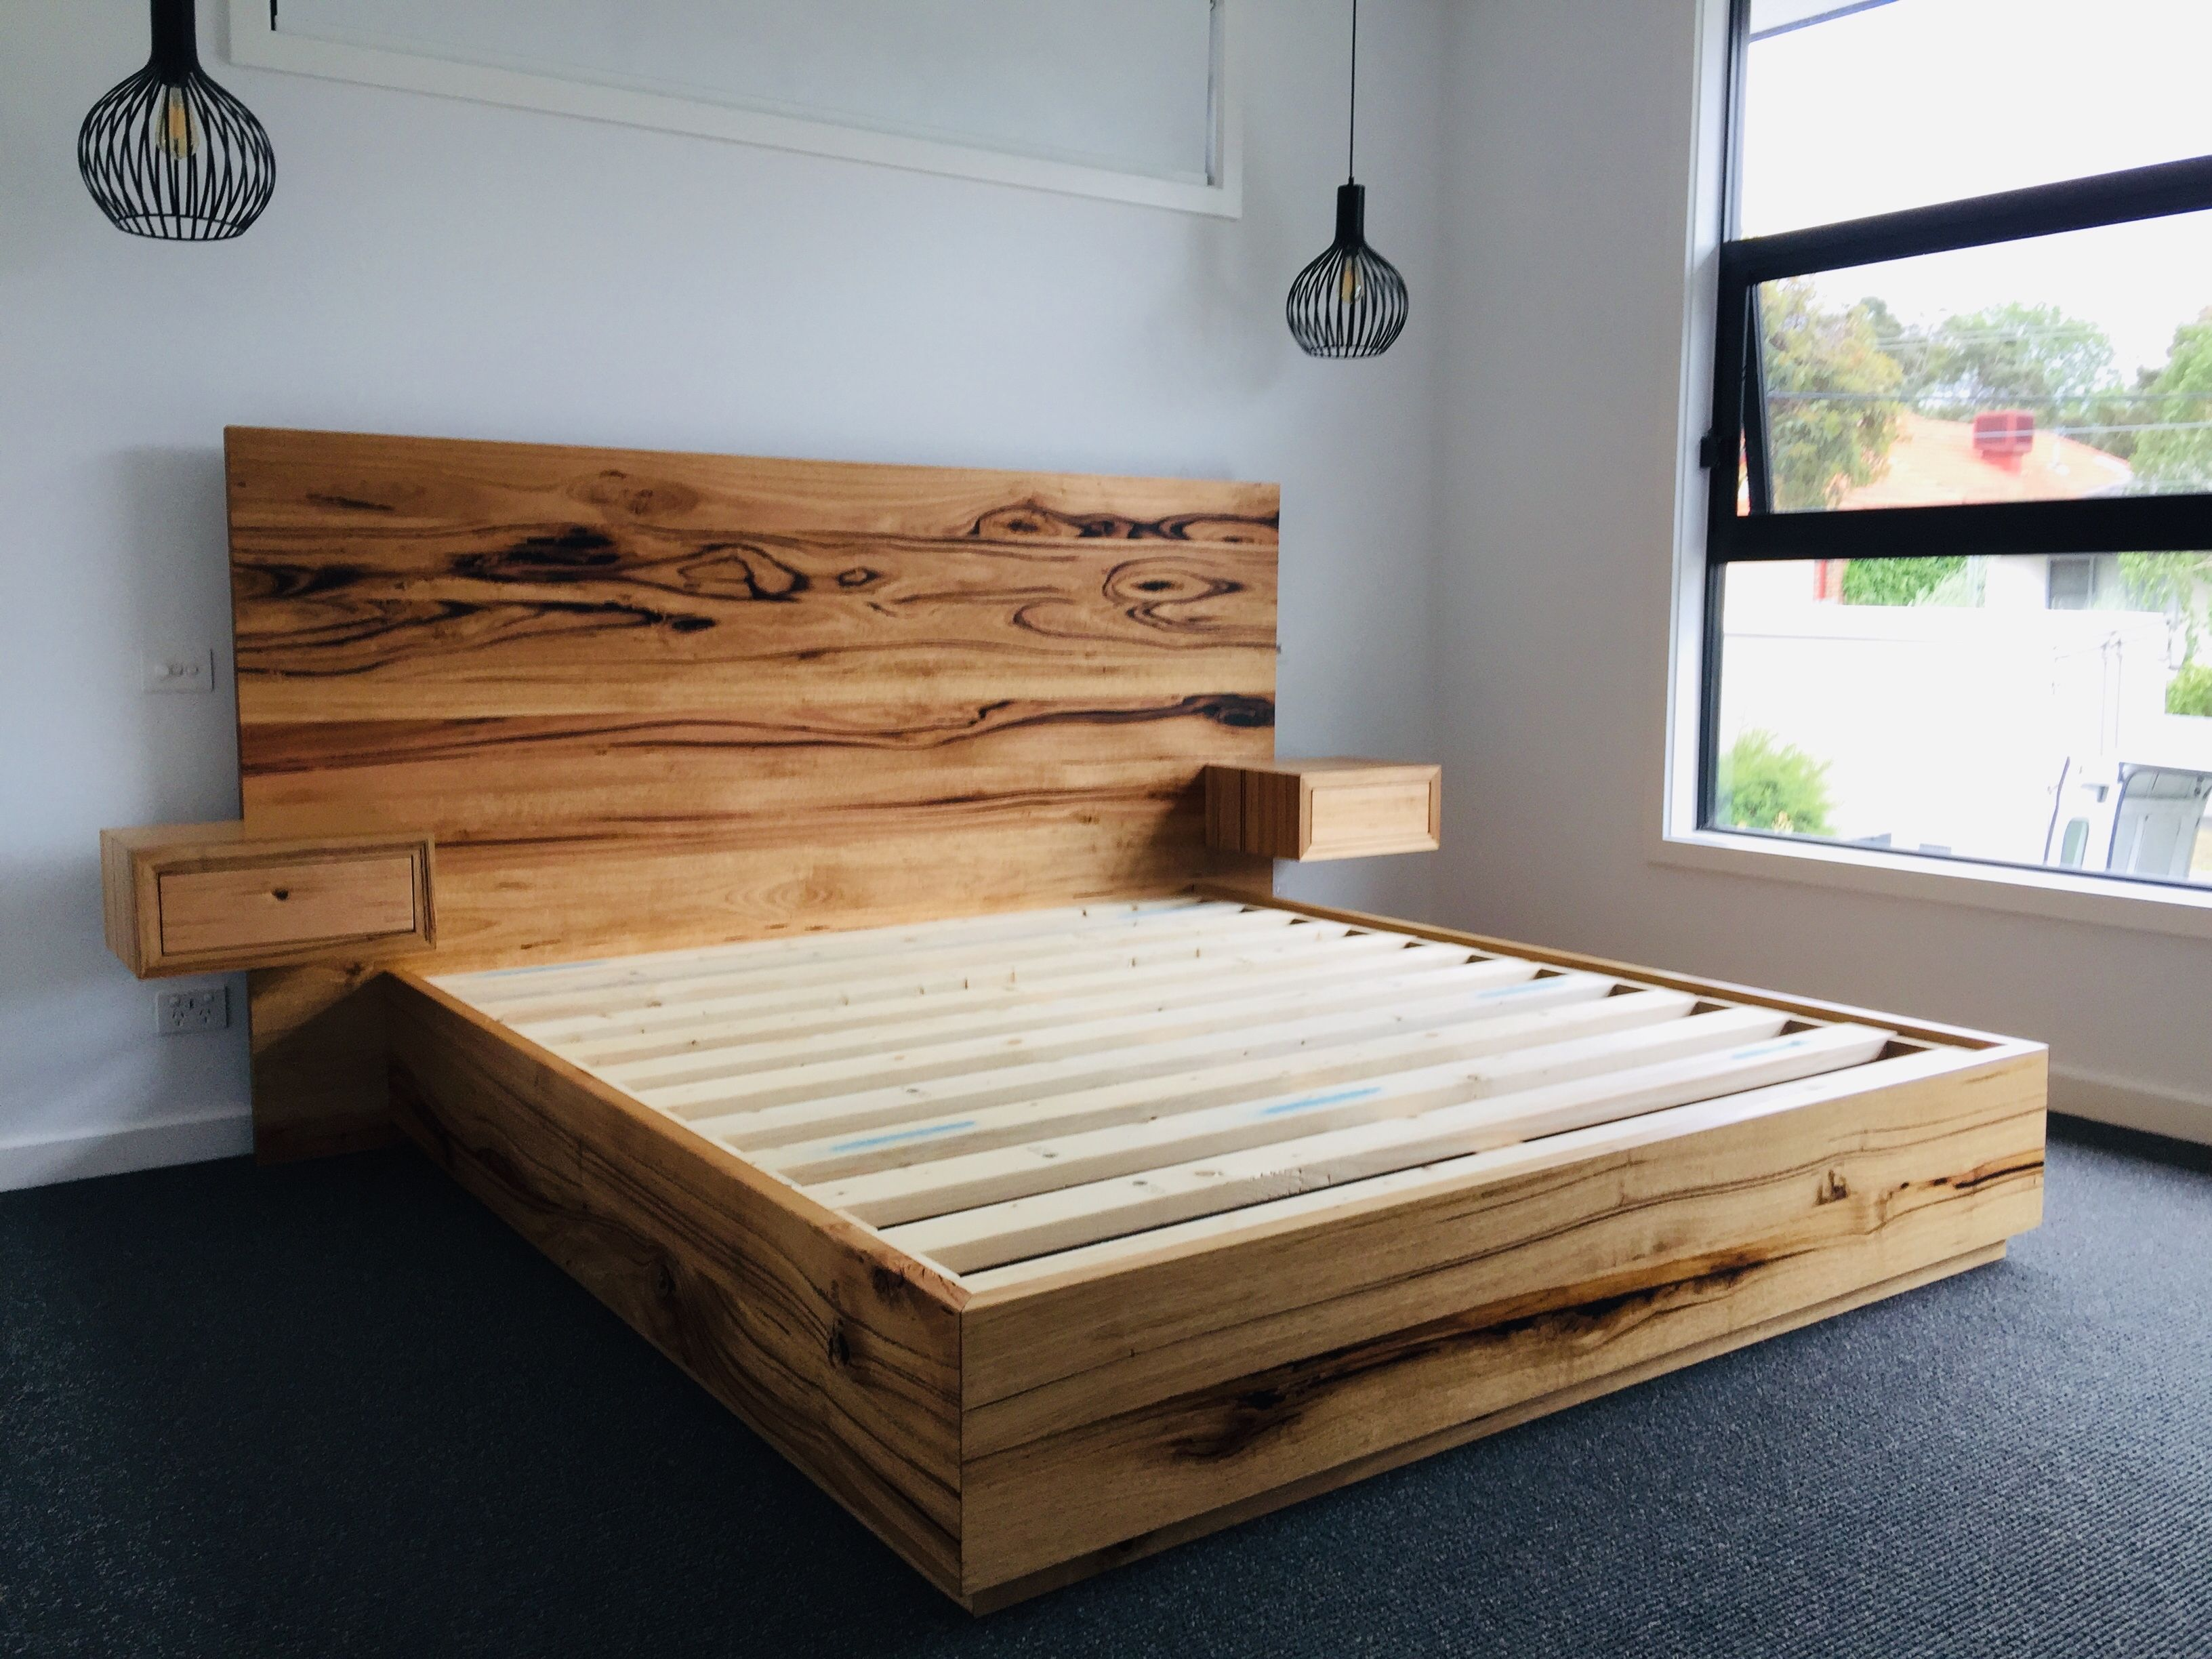 Brooklyn King Bed Timber Beds Furniture Dining Table Furniture